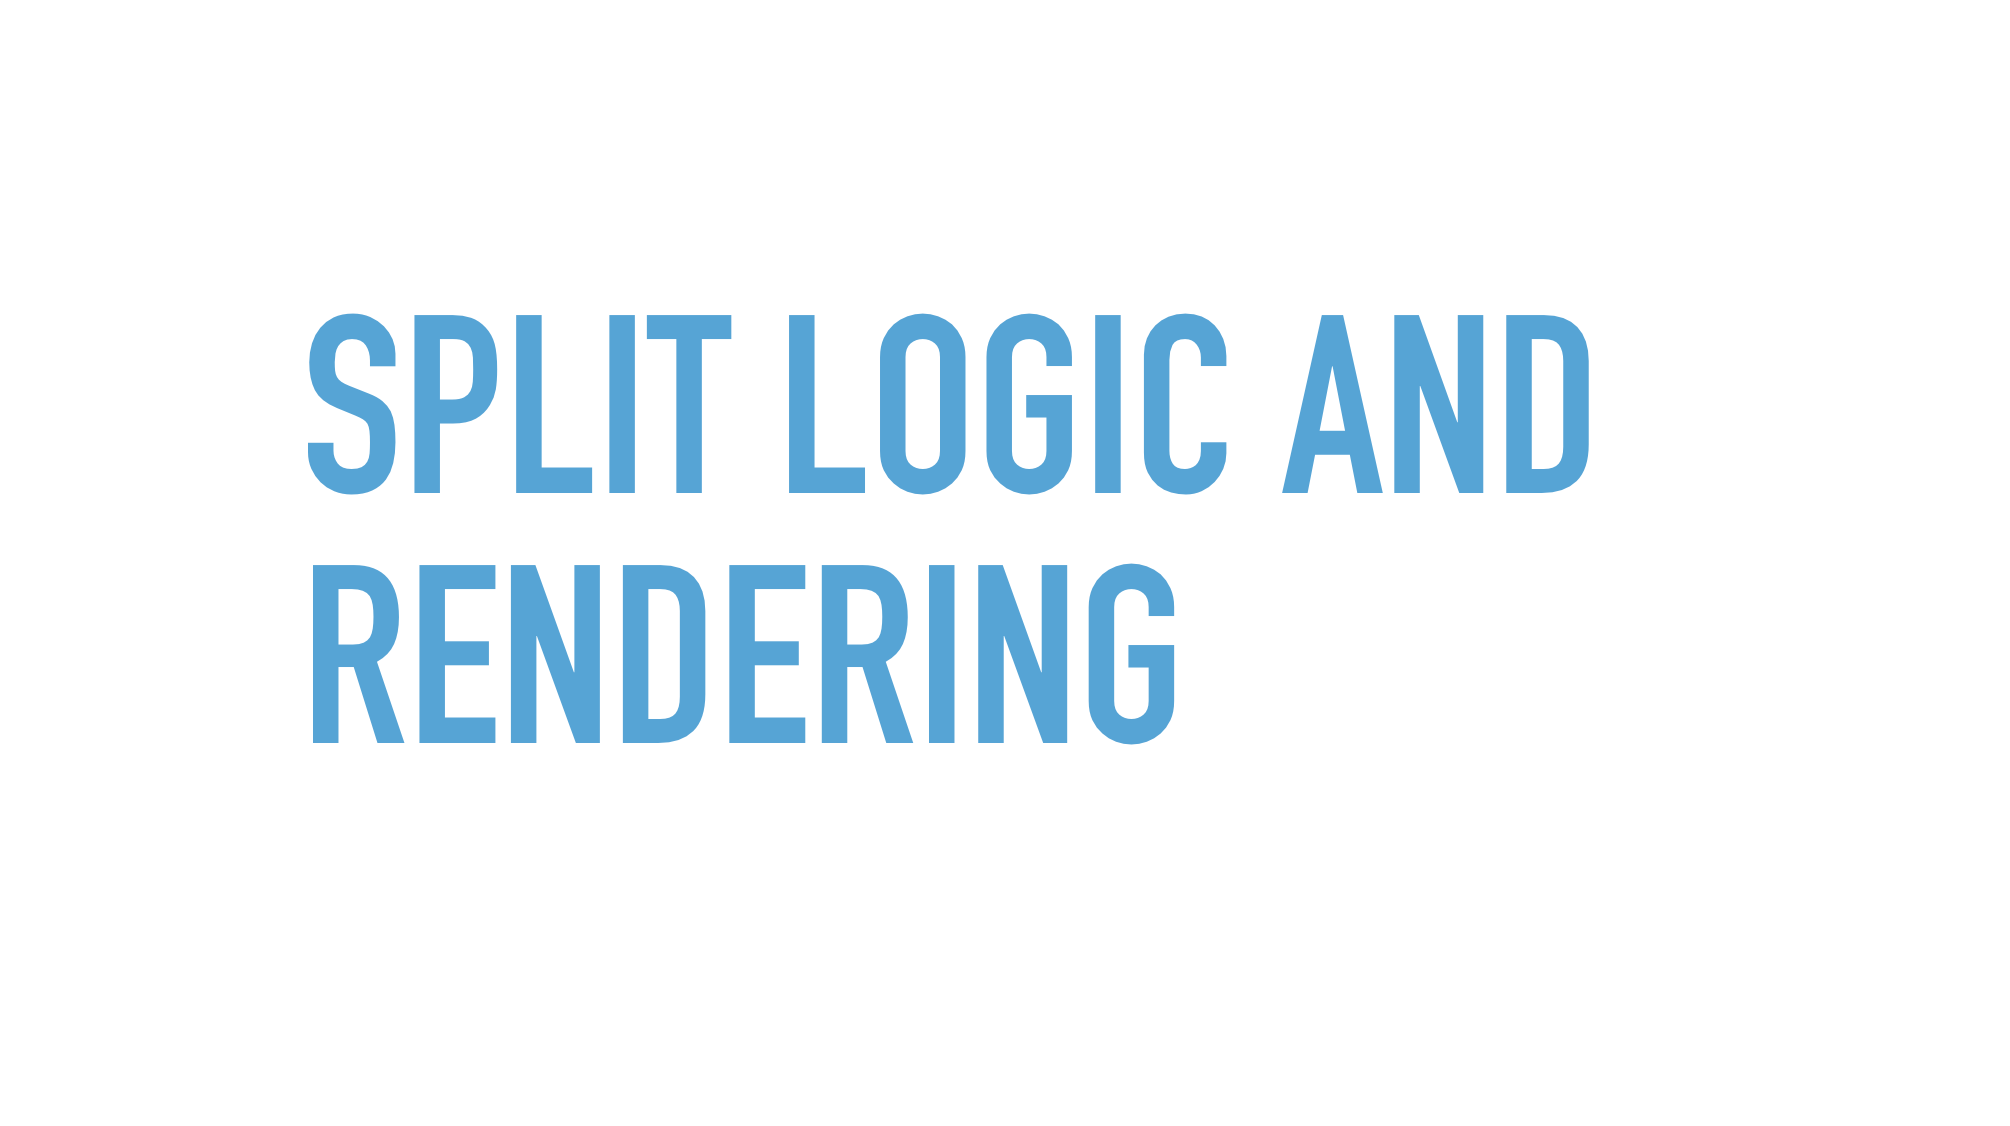 Slide text: Split logic and rendering